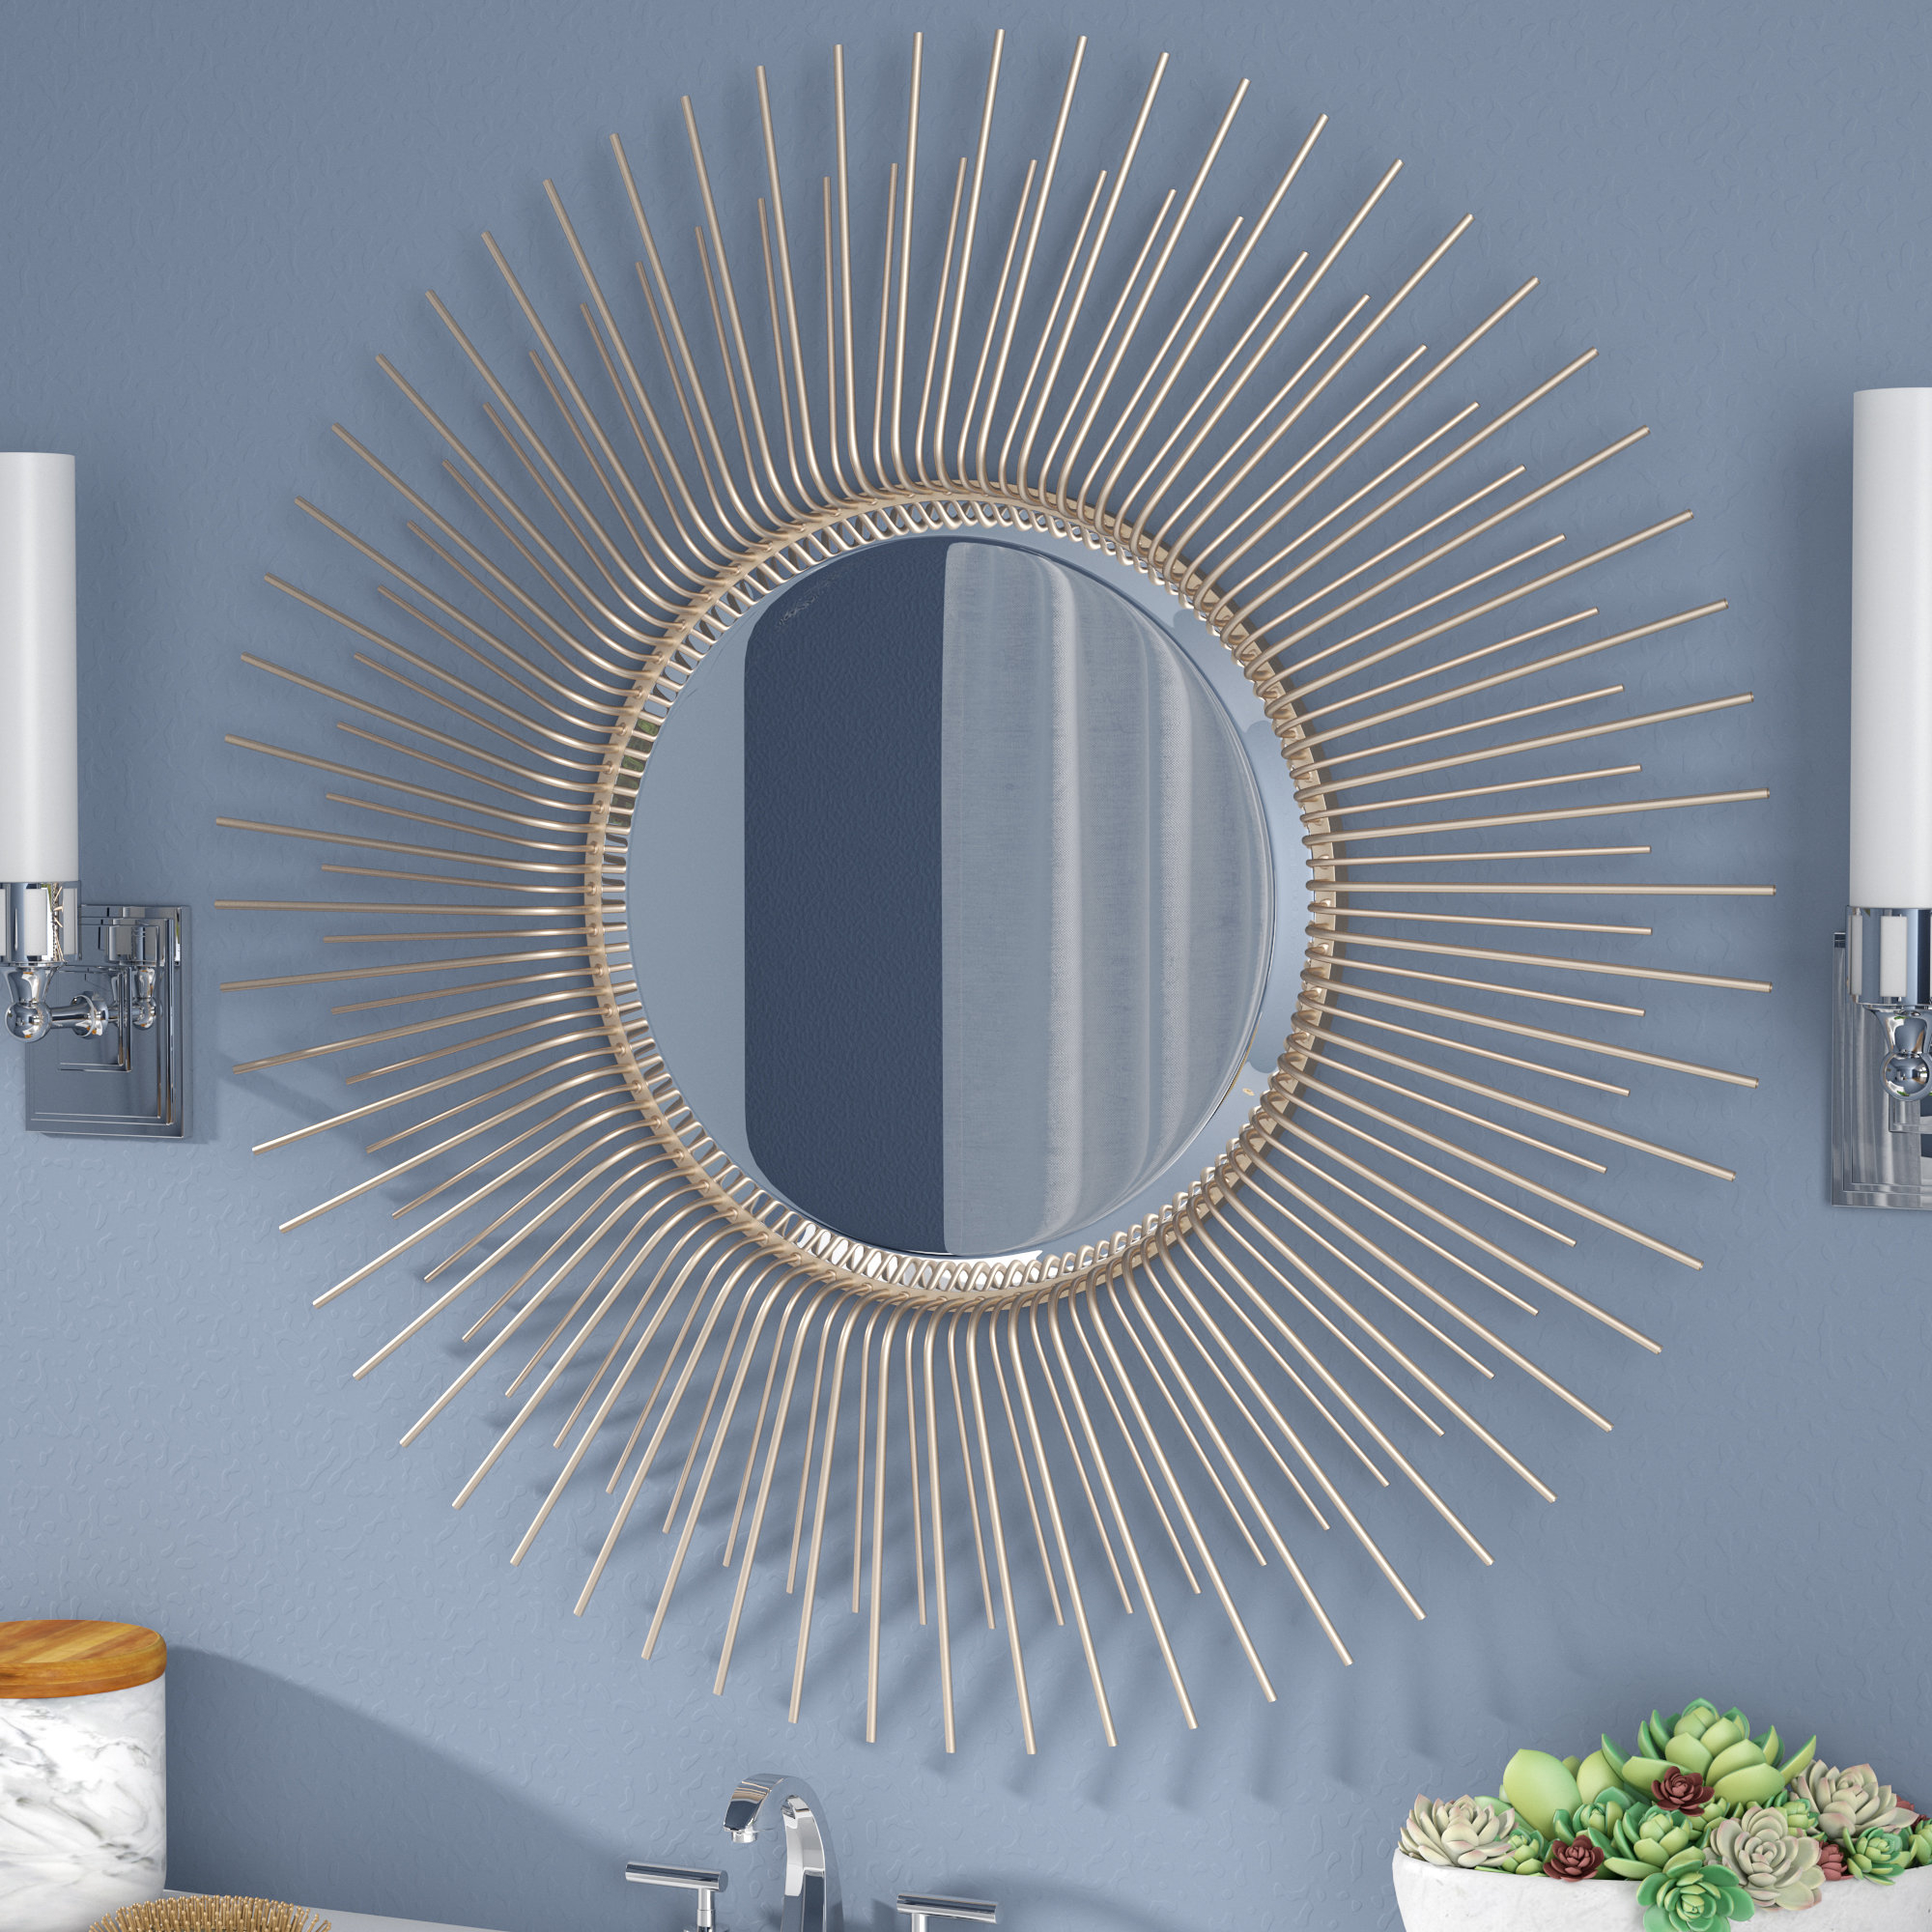 Oversized Sunburst Wood Frame Accent Mirror With Fashionable Estrela Modern Sunburst Metal Wall Mirrors (View 17 of 20)